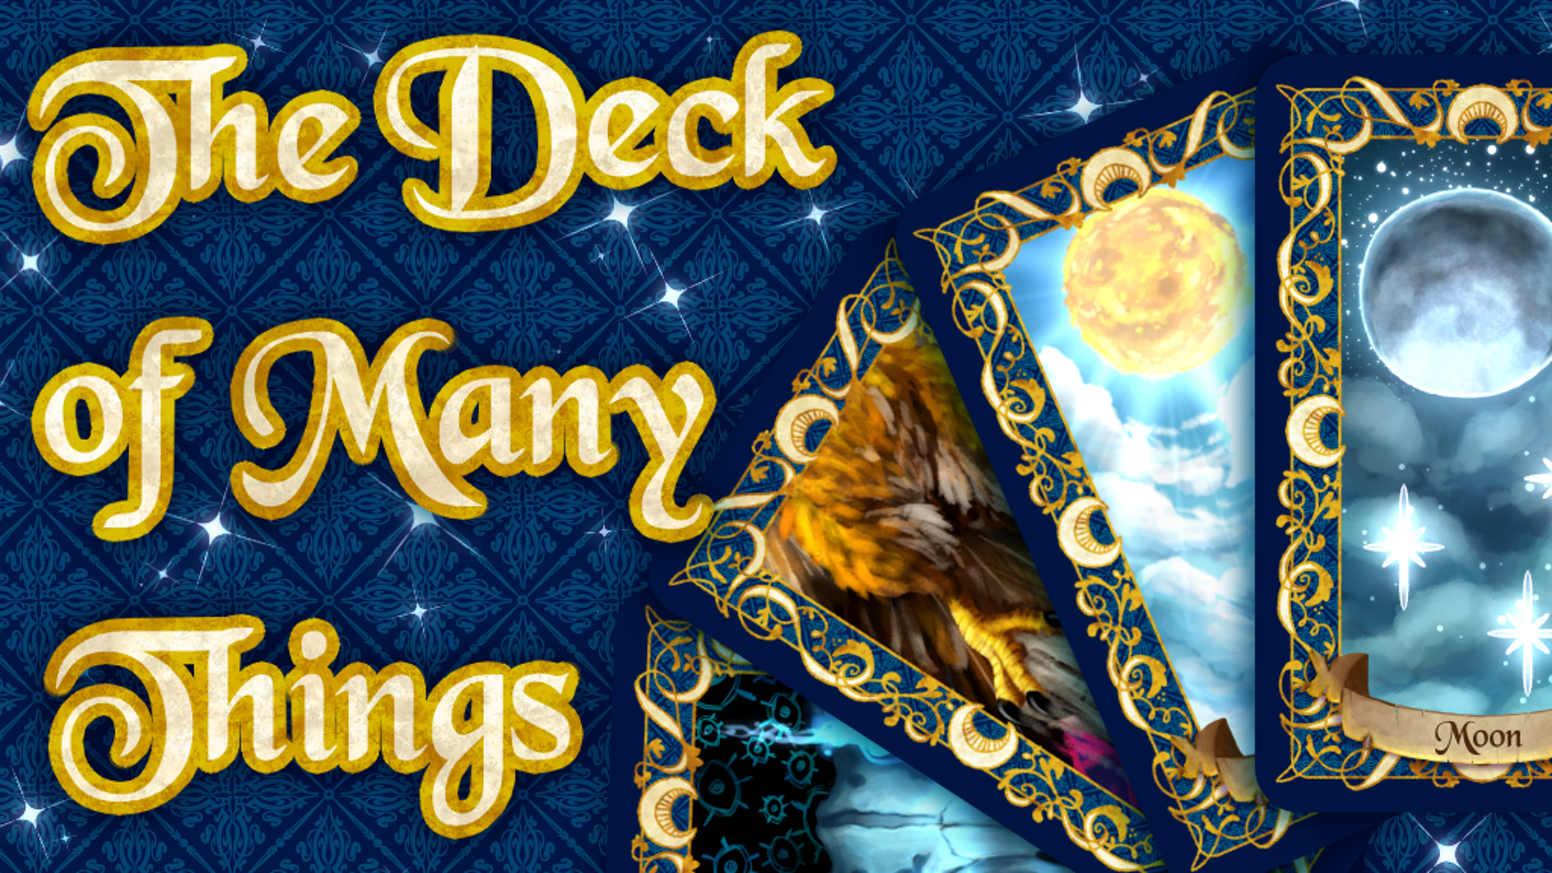 The Deck of Many Things come to life with vibrant, colorful artwork and a mysterious aesthetic. PreOrders close on September 2nd, 2019!